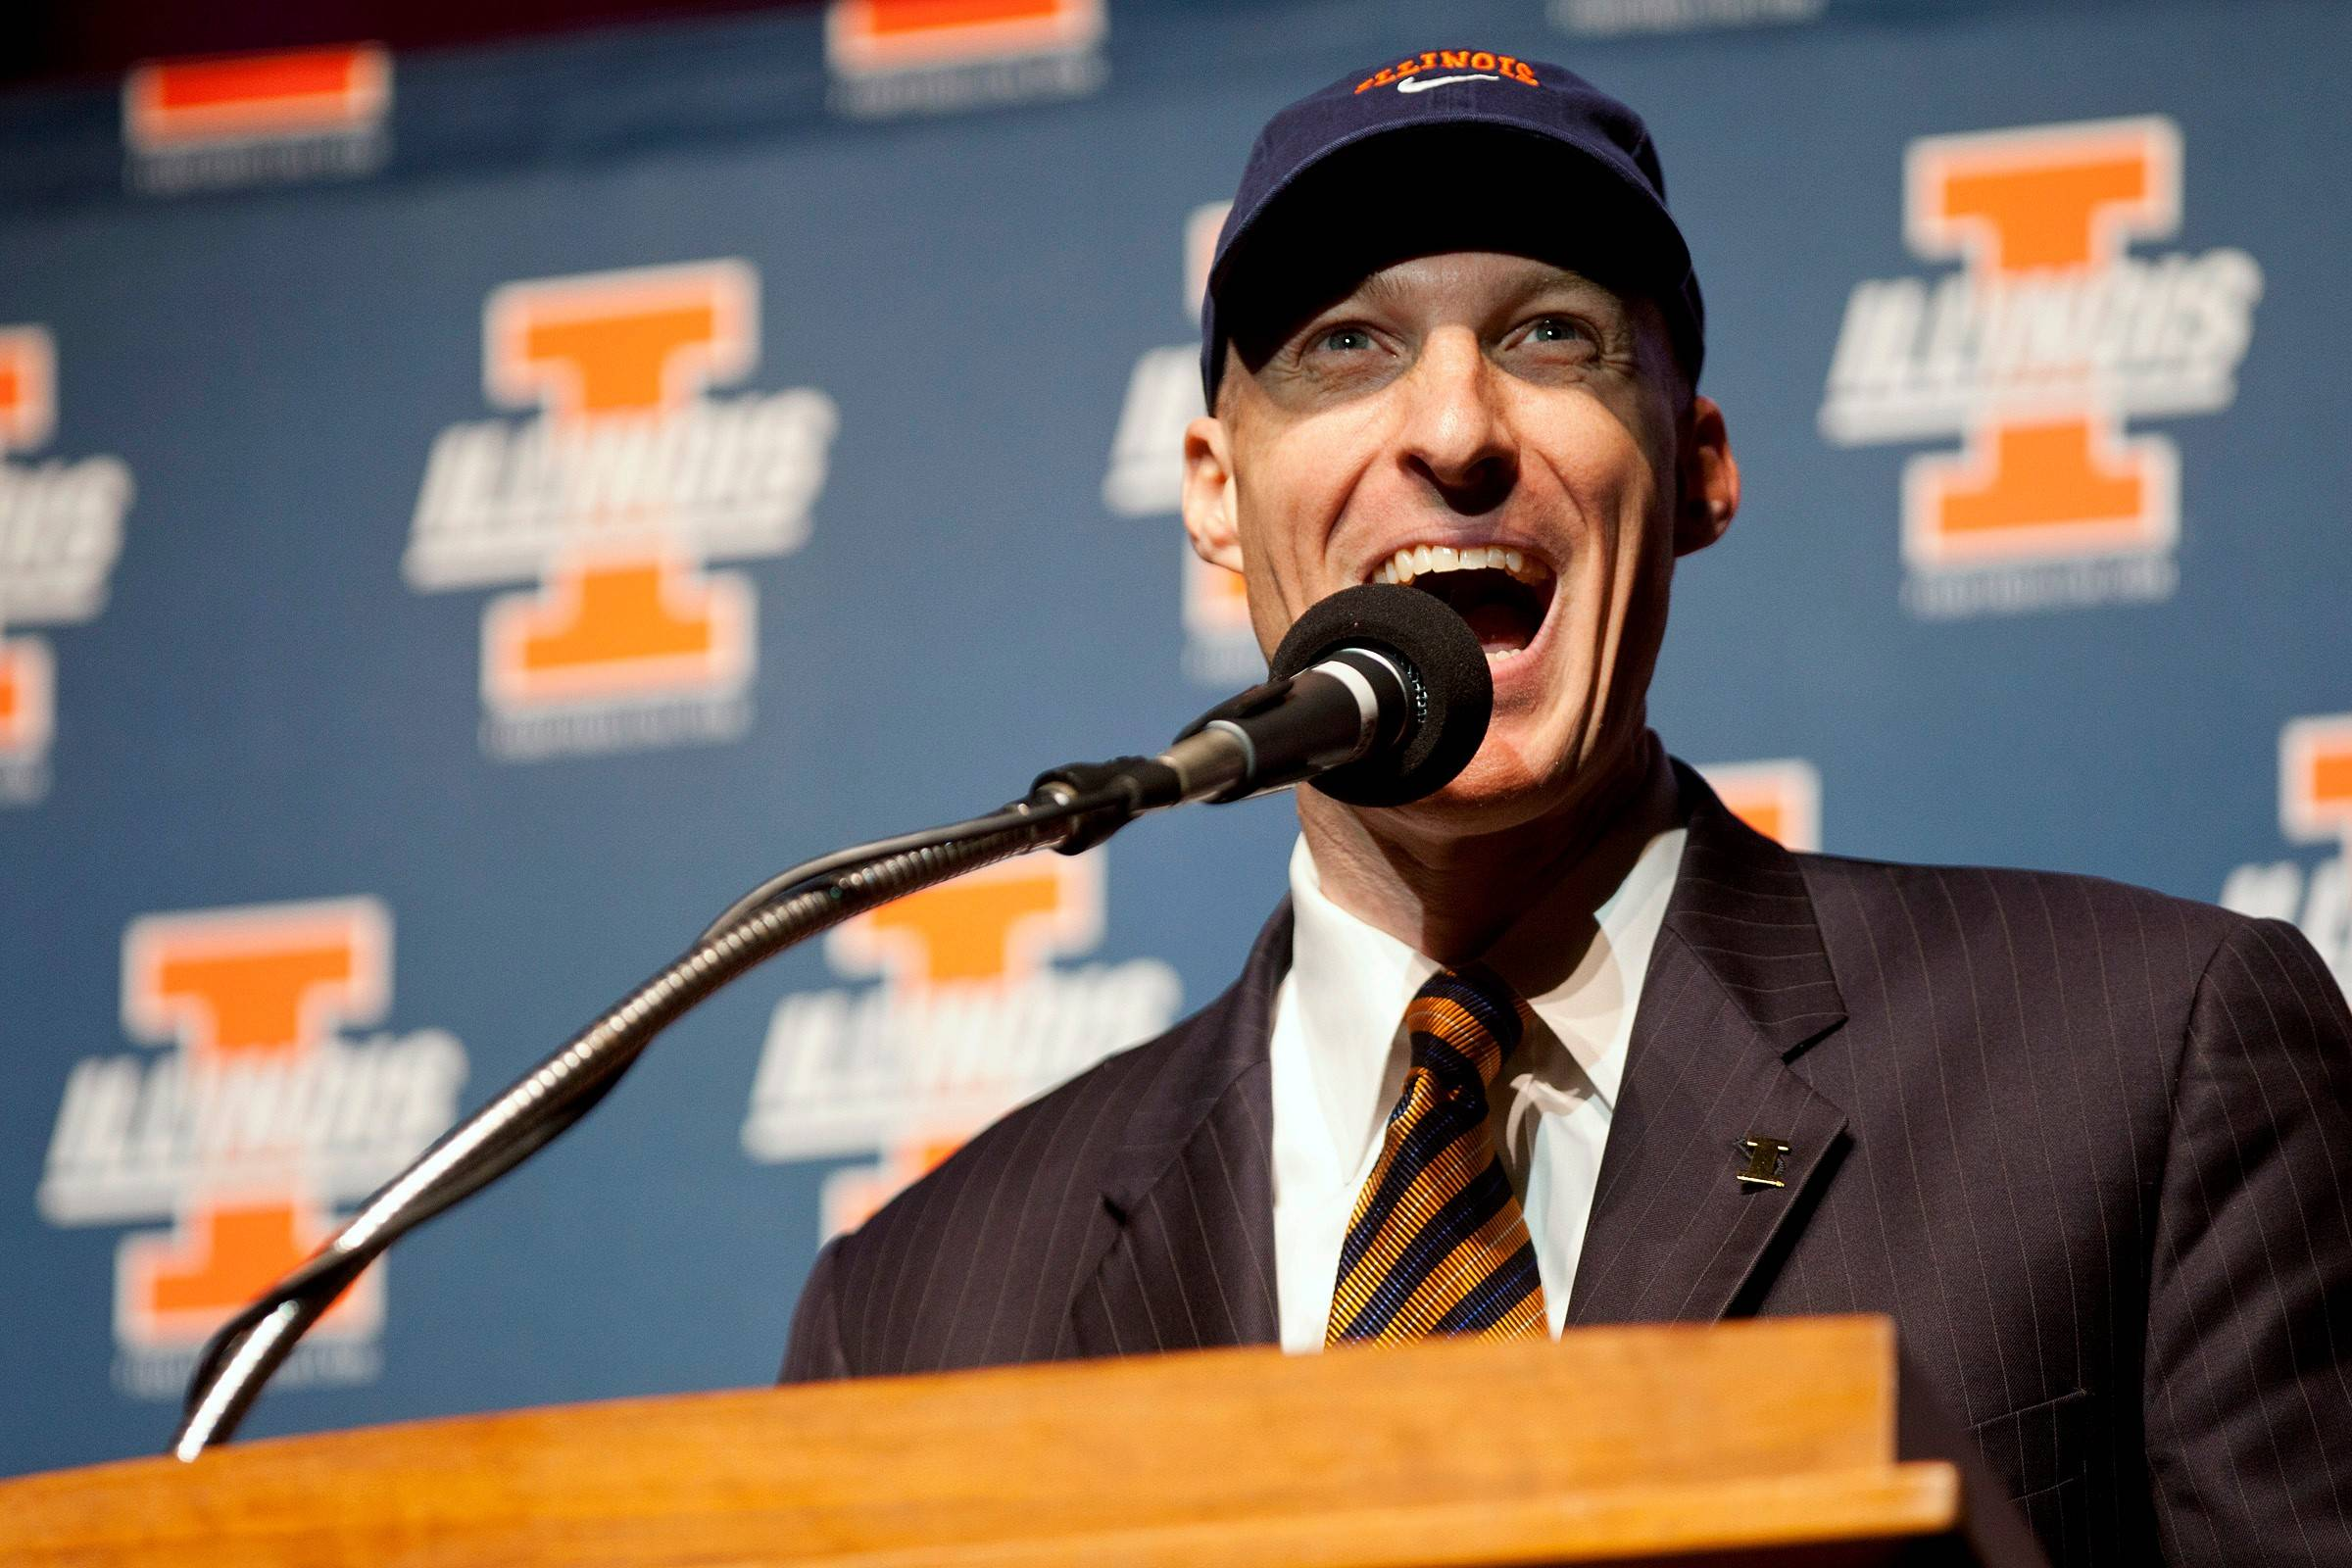 New Illinois men's basketball coach John Groce speaks during his introductory news conference, Thursday, March 29, 2012, in Champaign, Ill. Groce is replacing the fired Bruce Weber after compiling a 85-56 overall record and 34-30 in MAC games at Ohio. (AP Photo/Herald & Review, Stephen Haas) MANDATORY CREDIT